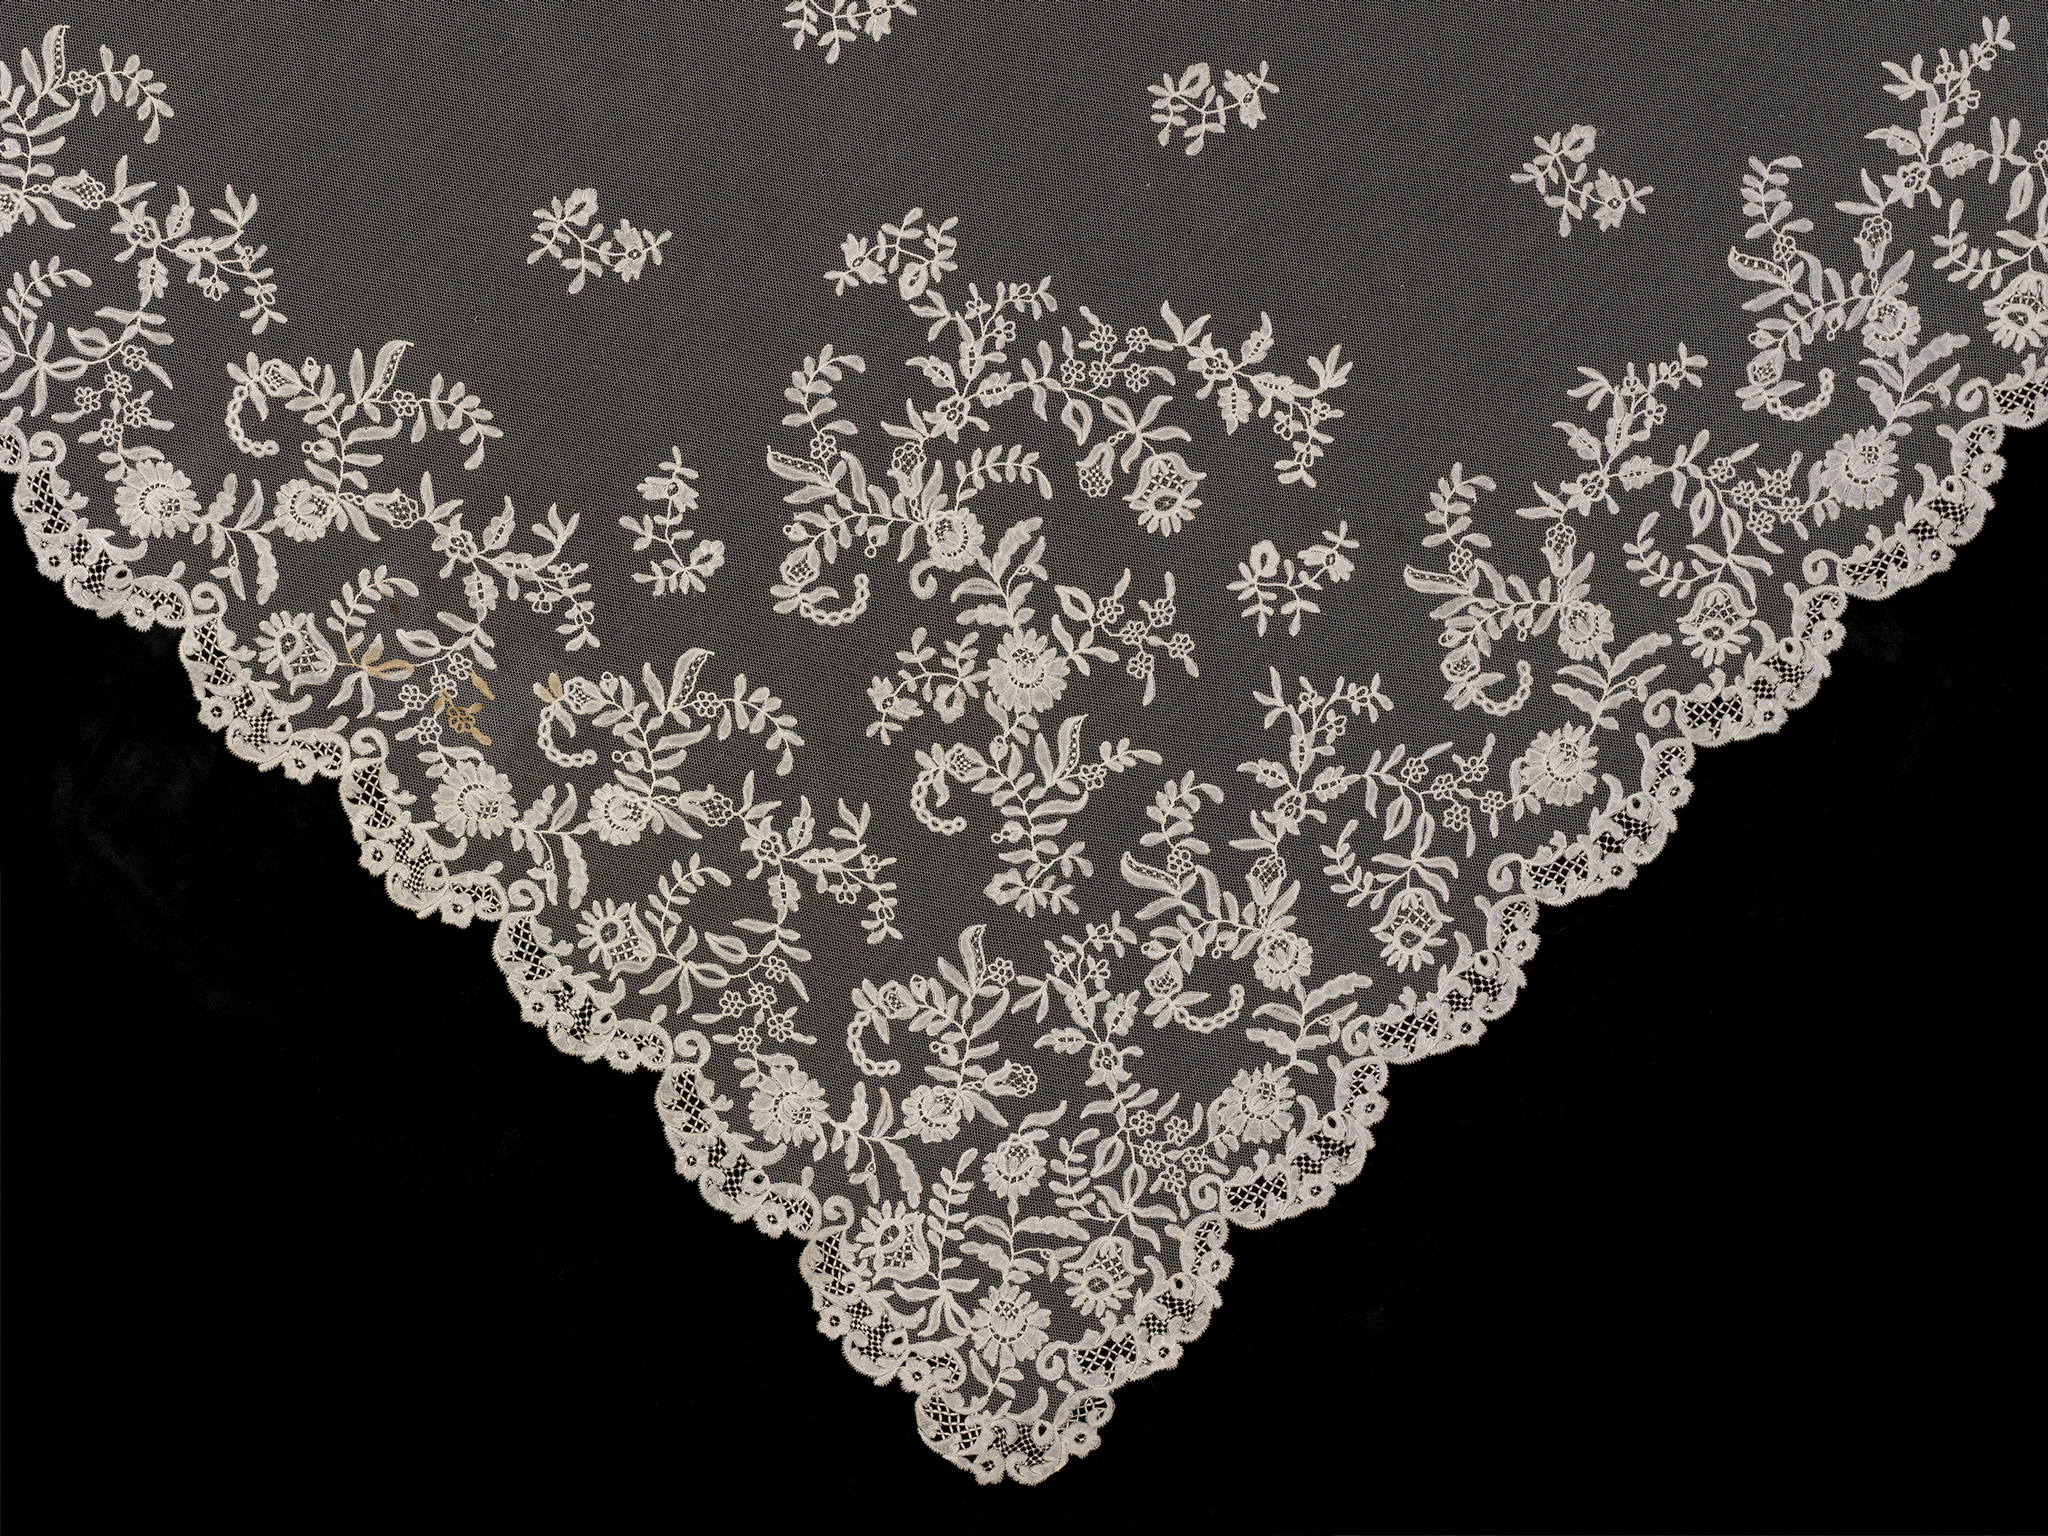 Honiton_lace_veil_detail_British_c.1850_c_Victoria_and_Albert_Museum_London